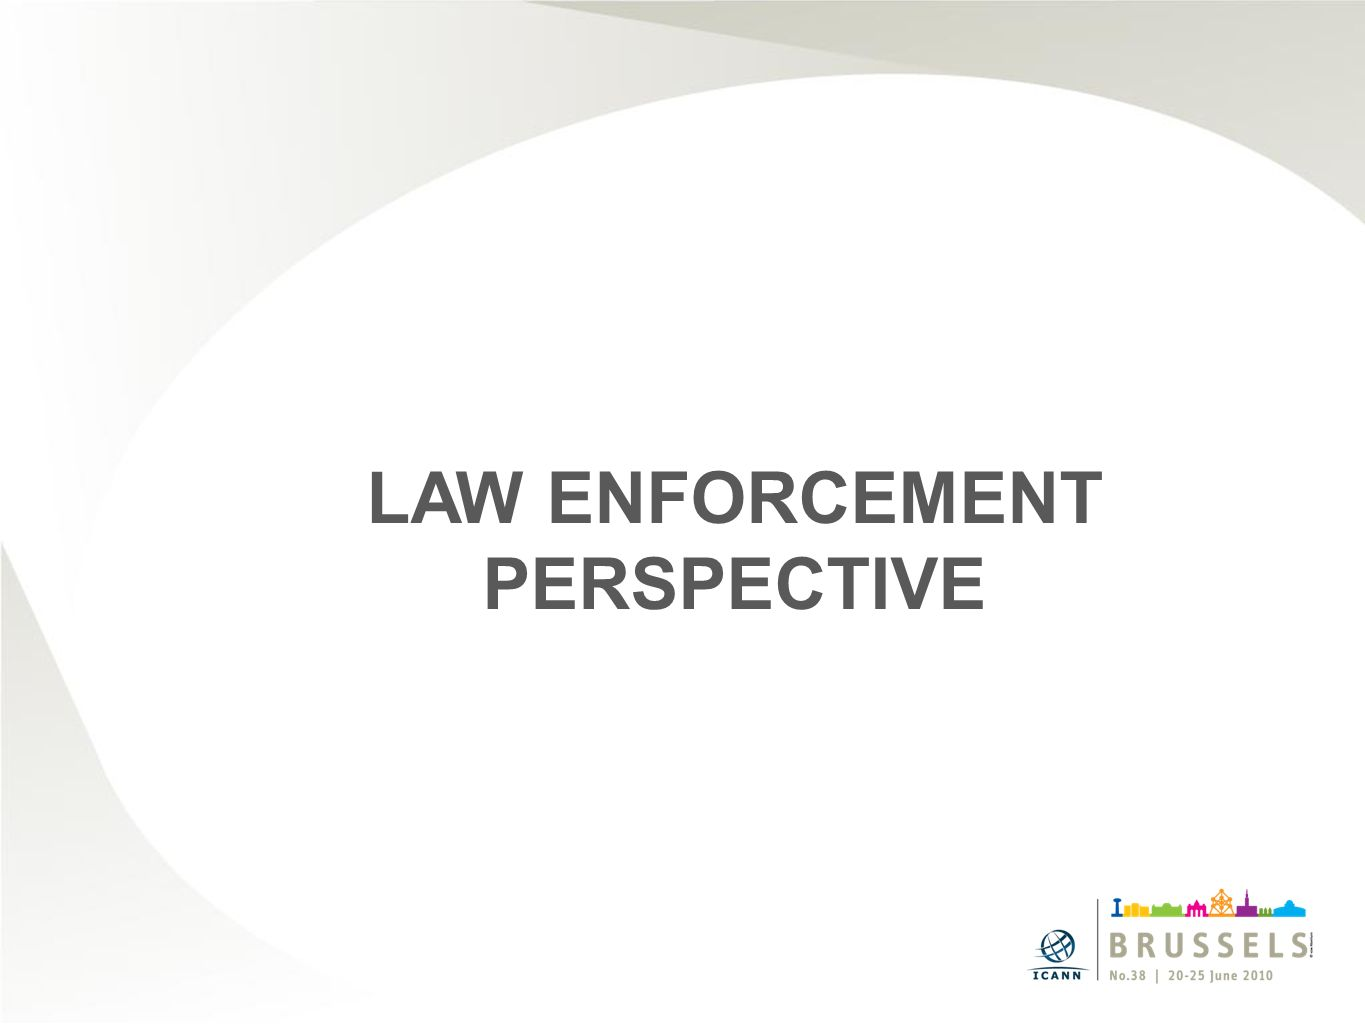 LAW ENFORCEMENT PERSPECTIVE